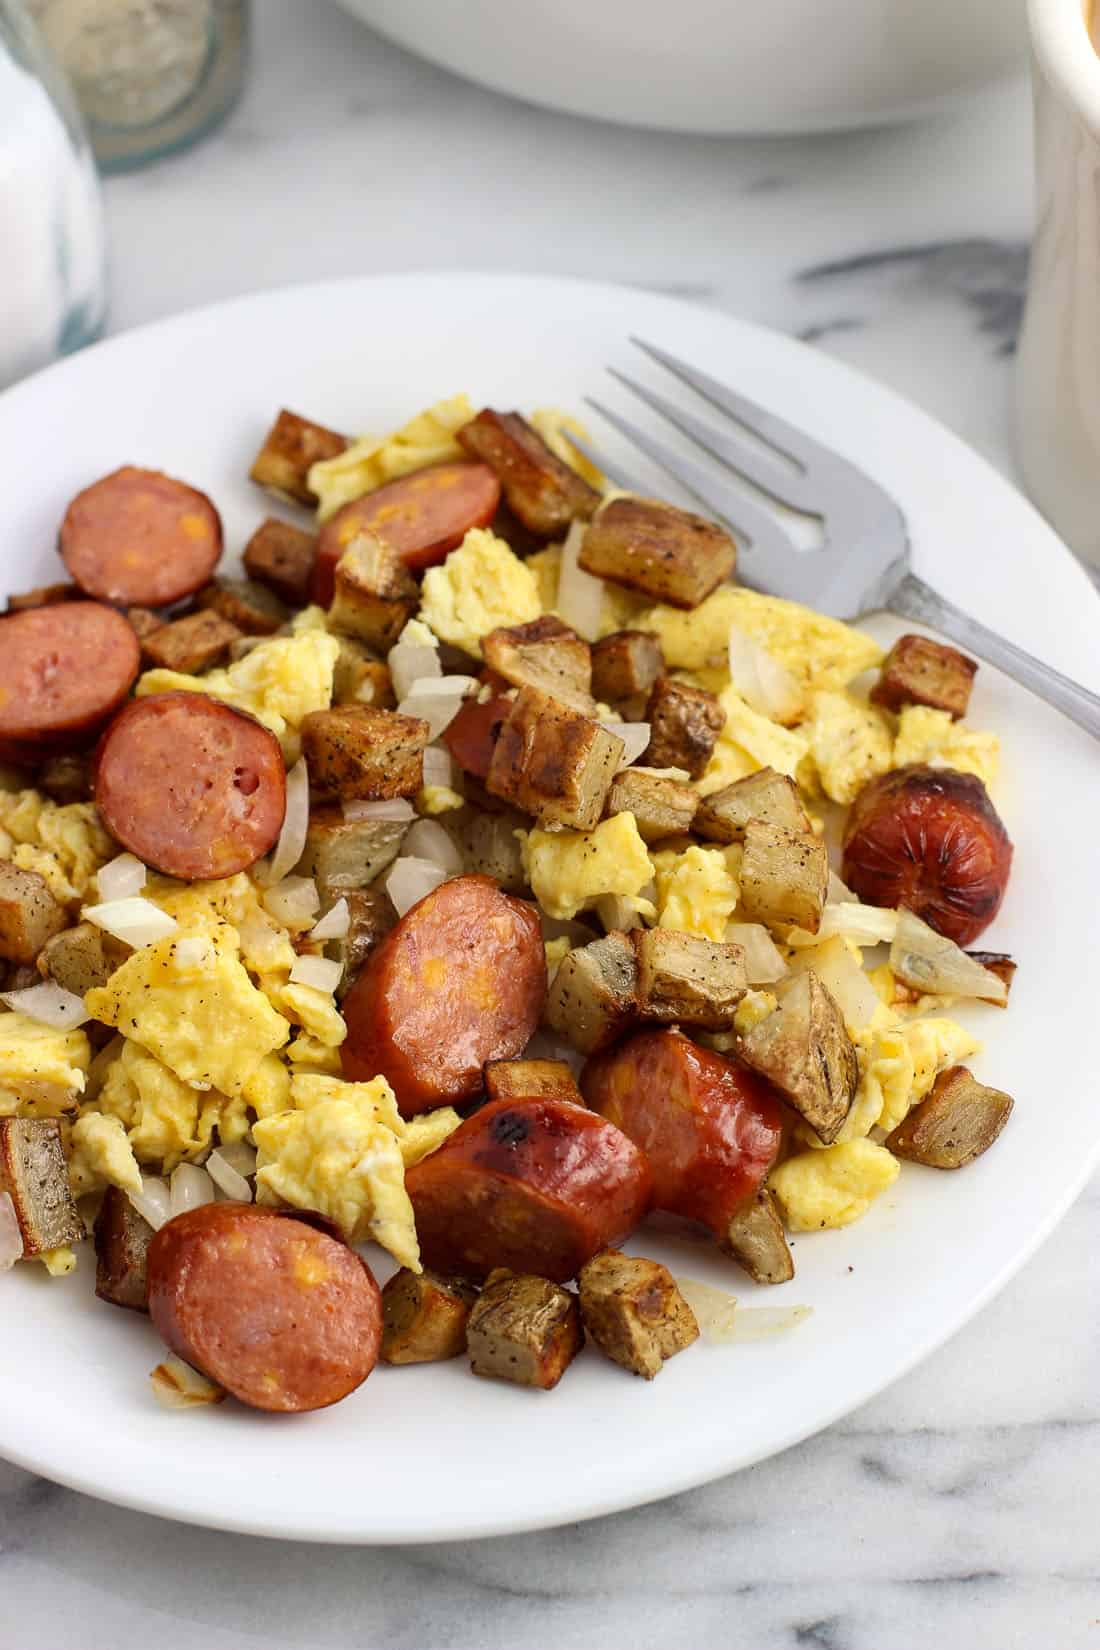 Grilled Smoked Sausage Breakfast Egg Scramble